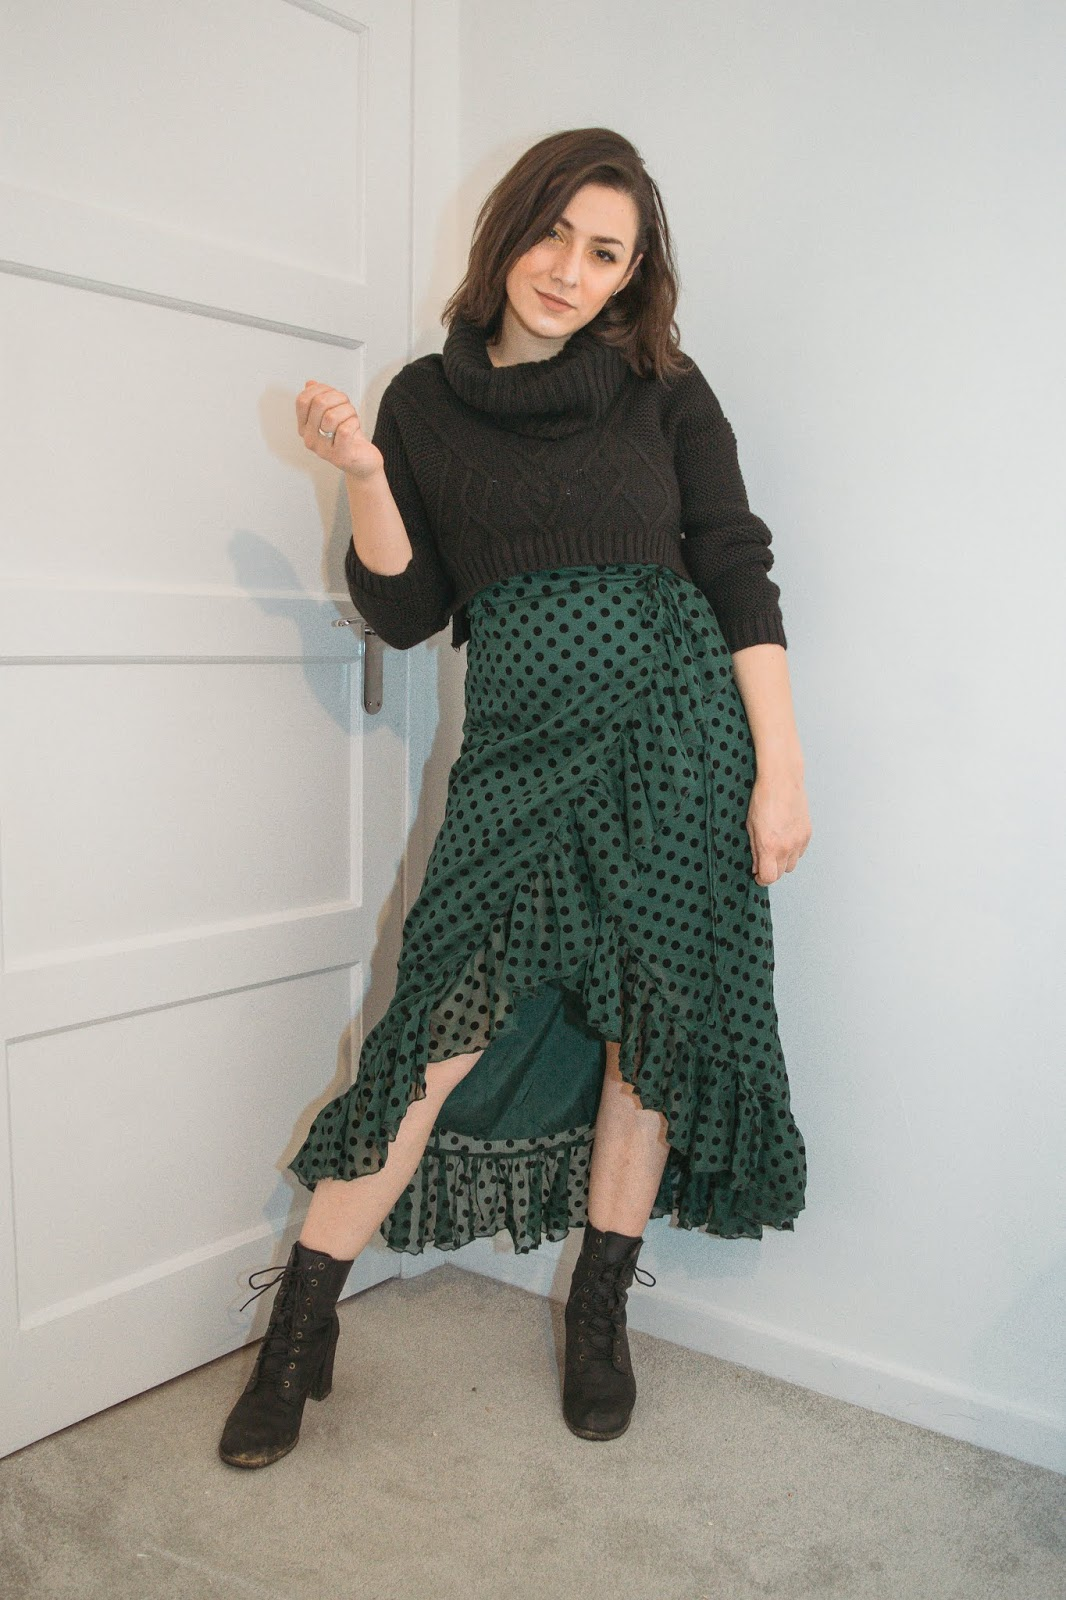 I am standing against a white background wearing a green frill wrap dress with black polka dots that is a mid length. I am wearing a black knitted roll neck jumper over the dress that is cropped from the waist. I am wearing heeled black boots.